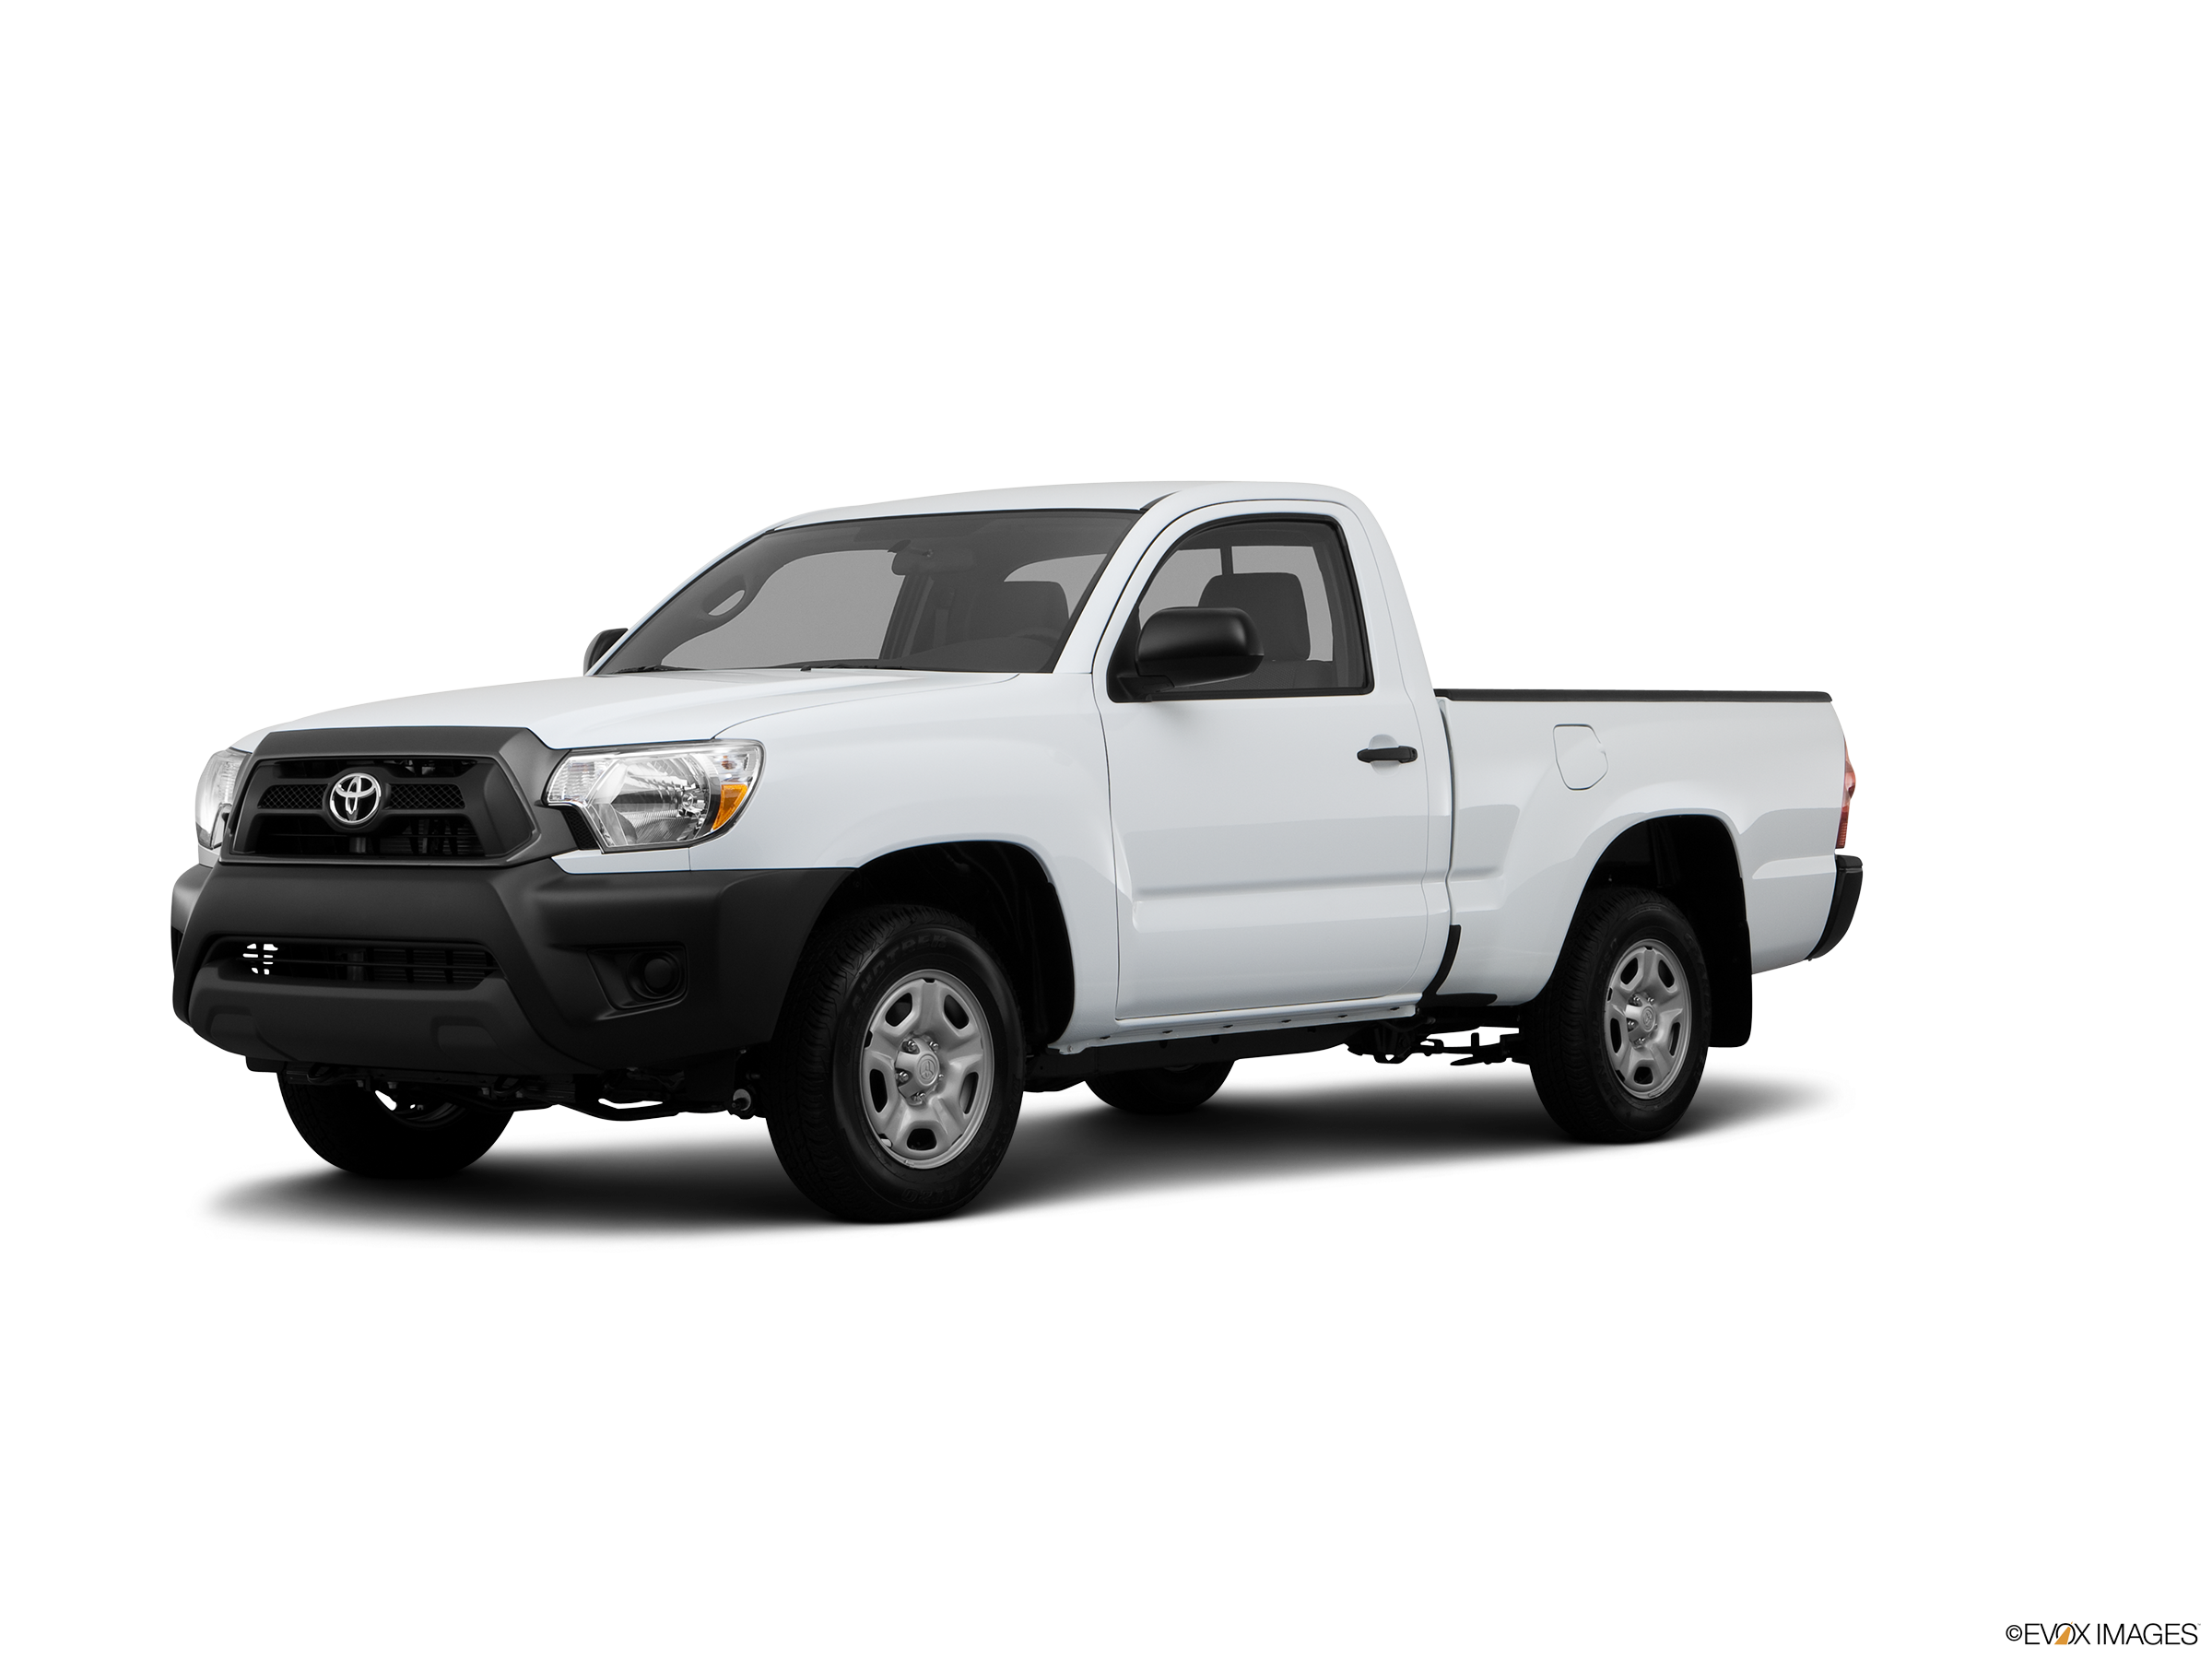 TO1095169 Plastic 5391104041 2 Wheel Drive Panel Textured For Toyota Tacoma Valance 1995 1996 1997 Front Lower